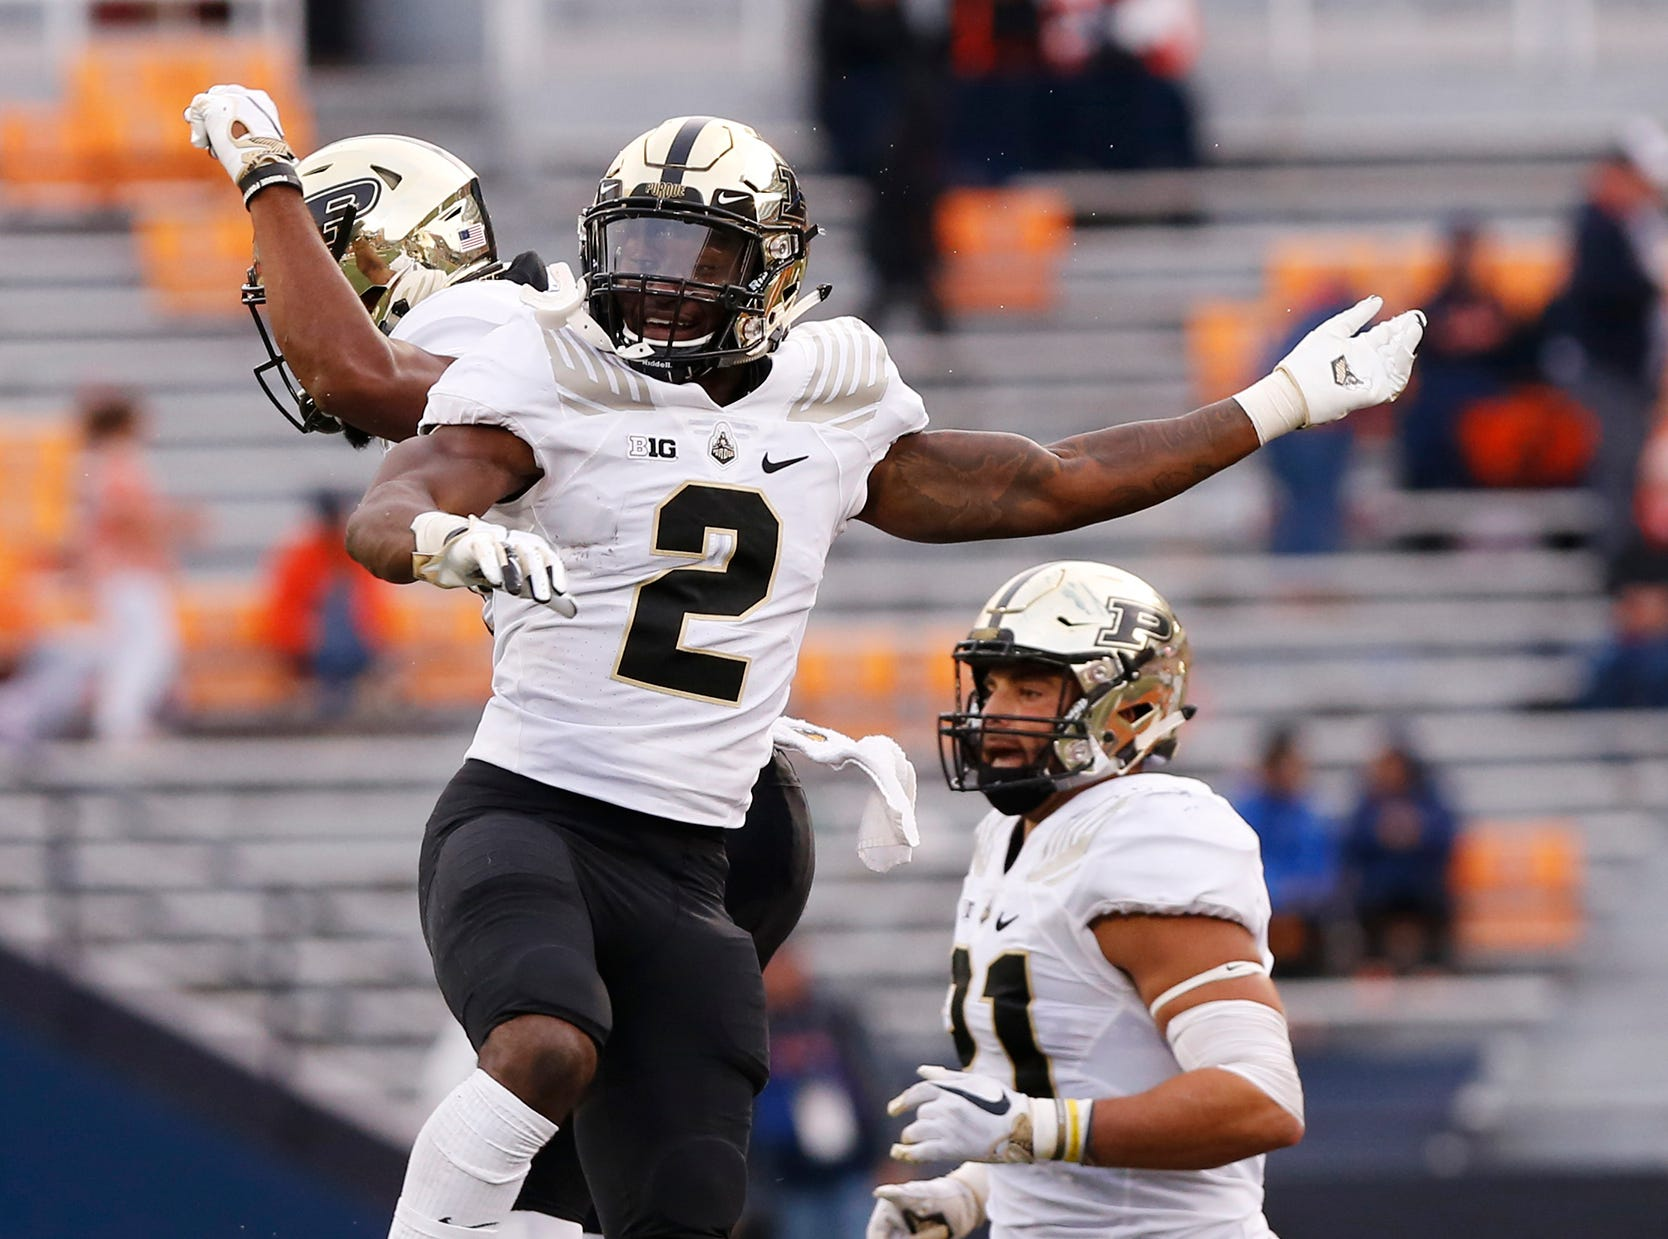 How they scored | Purdue football 46, Illinois 7